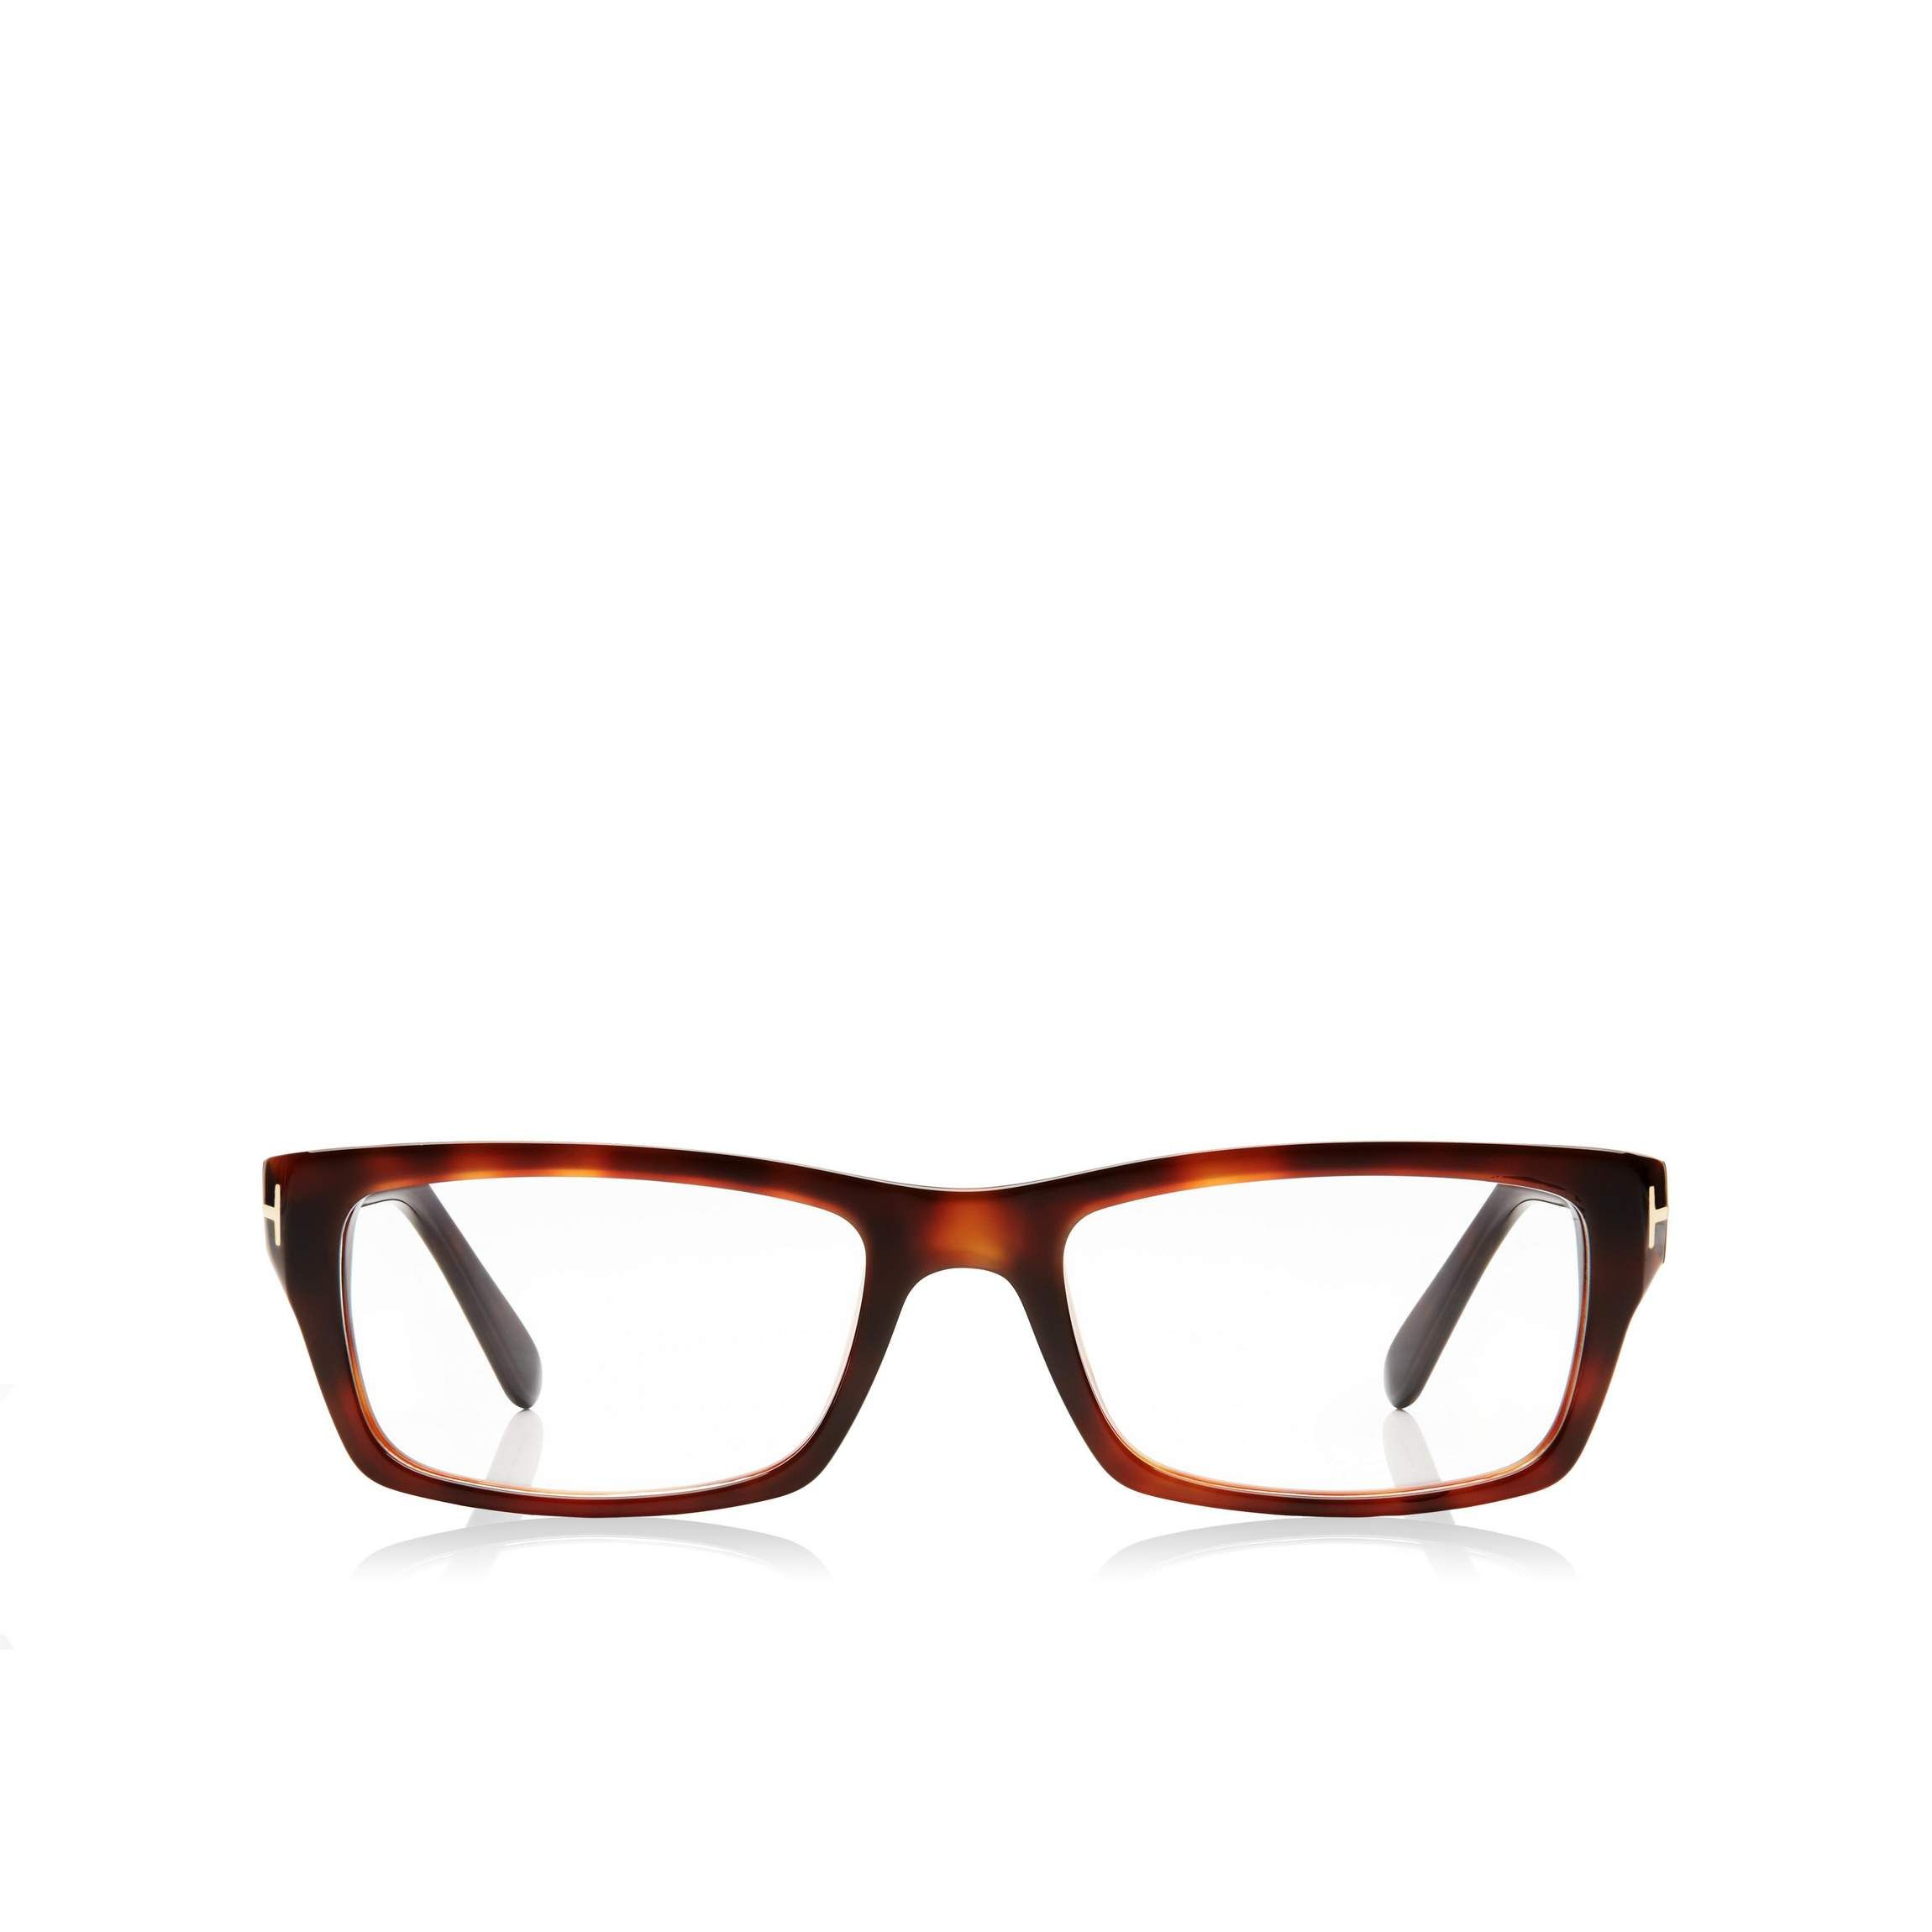 5294d40113 Square Optical Frame - Tom Ford · Frame ShopOptical FramesGlasses FramesTom  FordEyewearLuisTemples